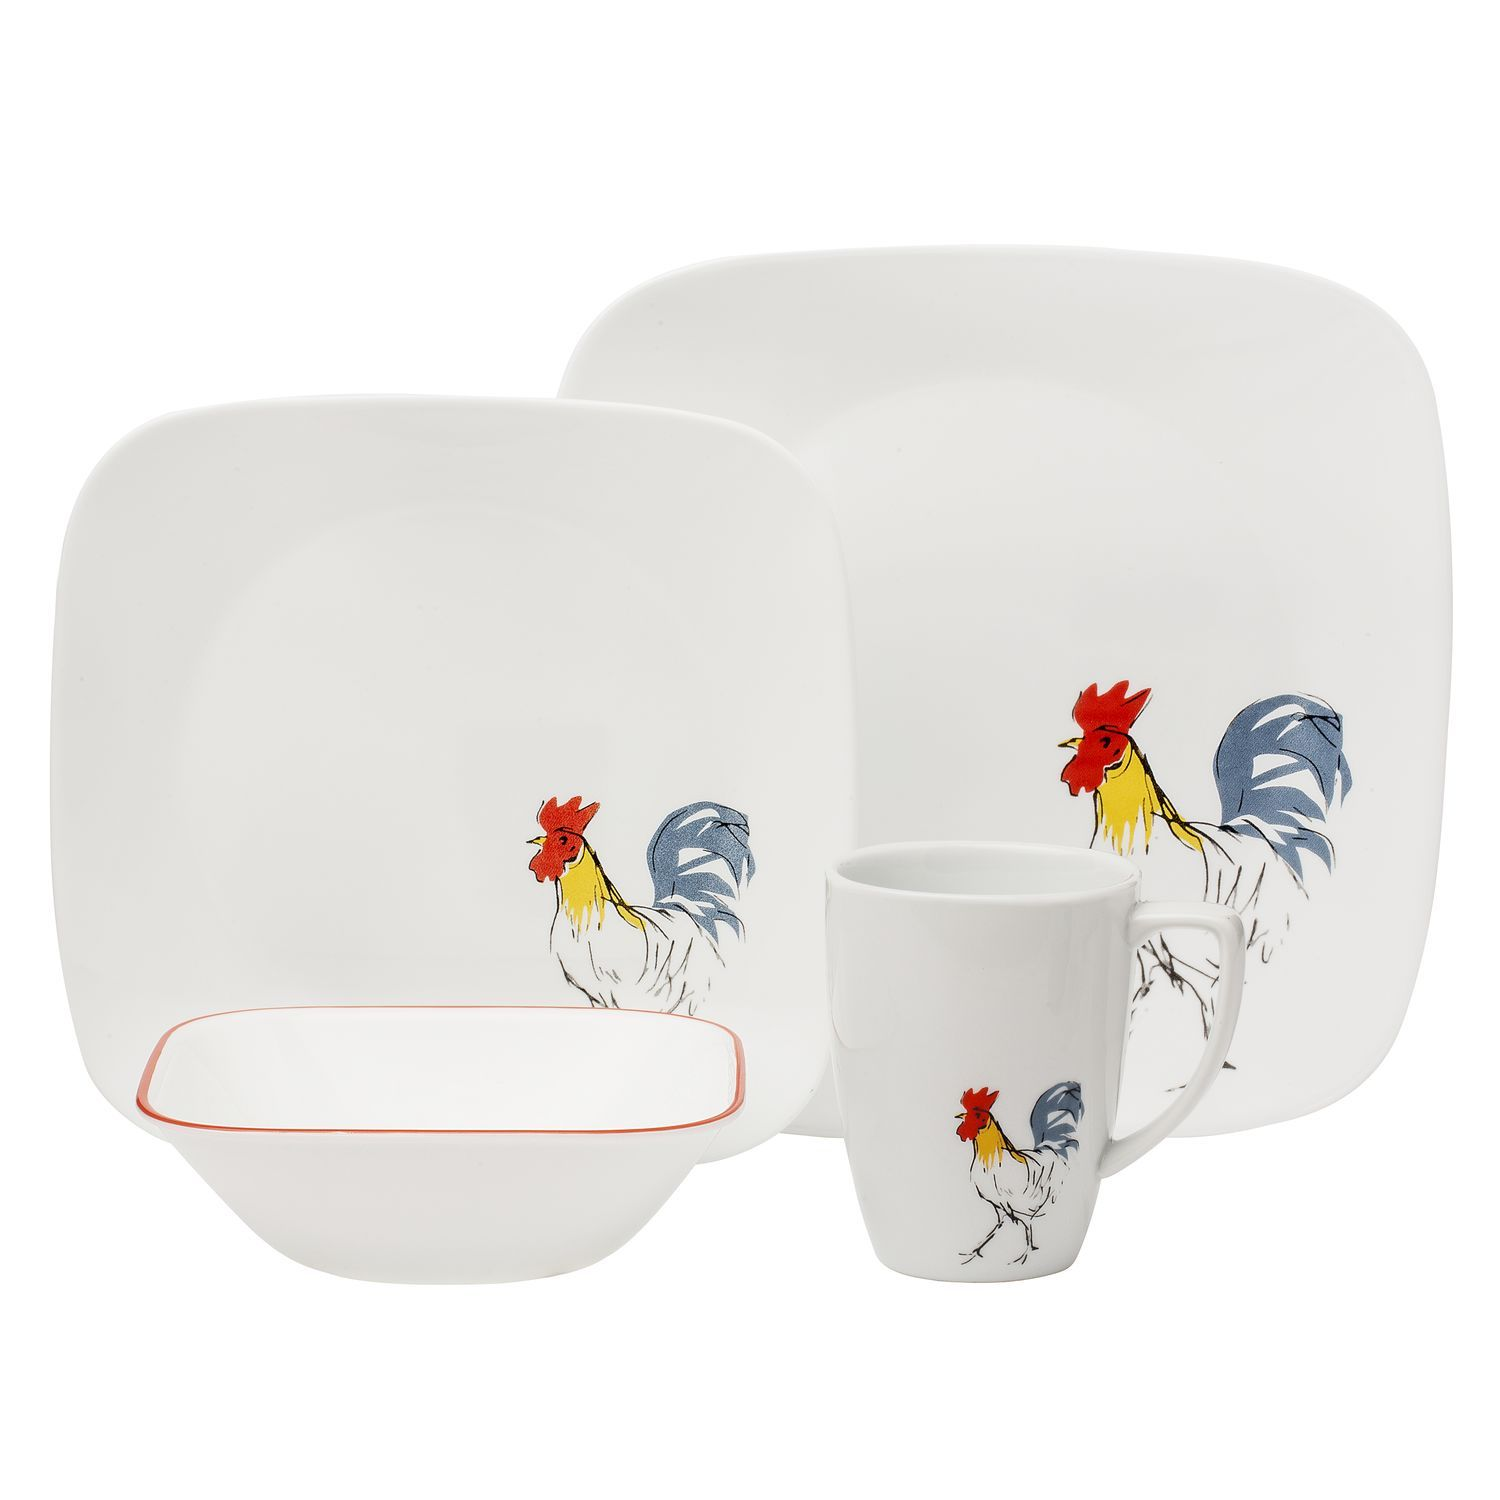 Corelle® Square™ Country Dawn 16-pc Dinnerware SetSquare™ Country Dawn 16-pc Dinnerware Set  sc 1 st  Pinterest & Corelle® Square™ Country Dawn 16-pc Dinnerware SetSquare™ Country ...